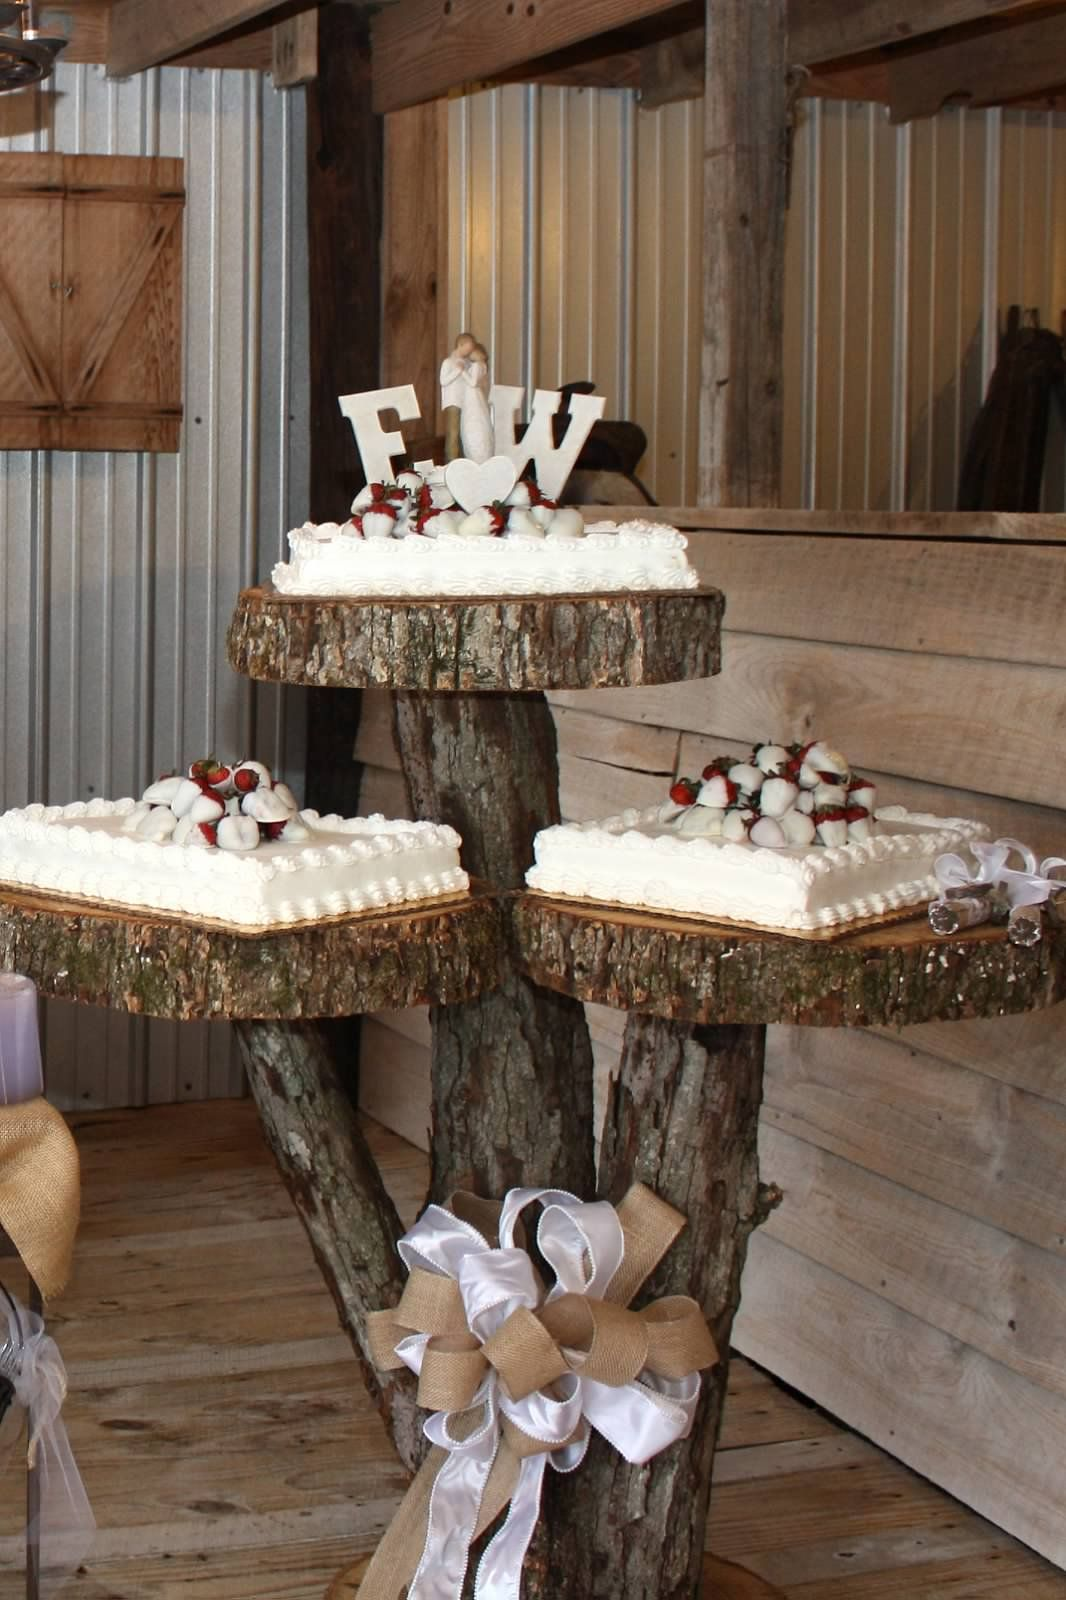 Rustic cake table for weddings near decatur al www rustic cake table for weddings near decatur al valleyviewbarnweddings use junglespirit Choice Image